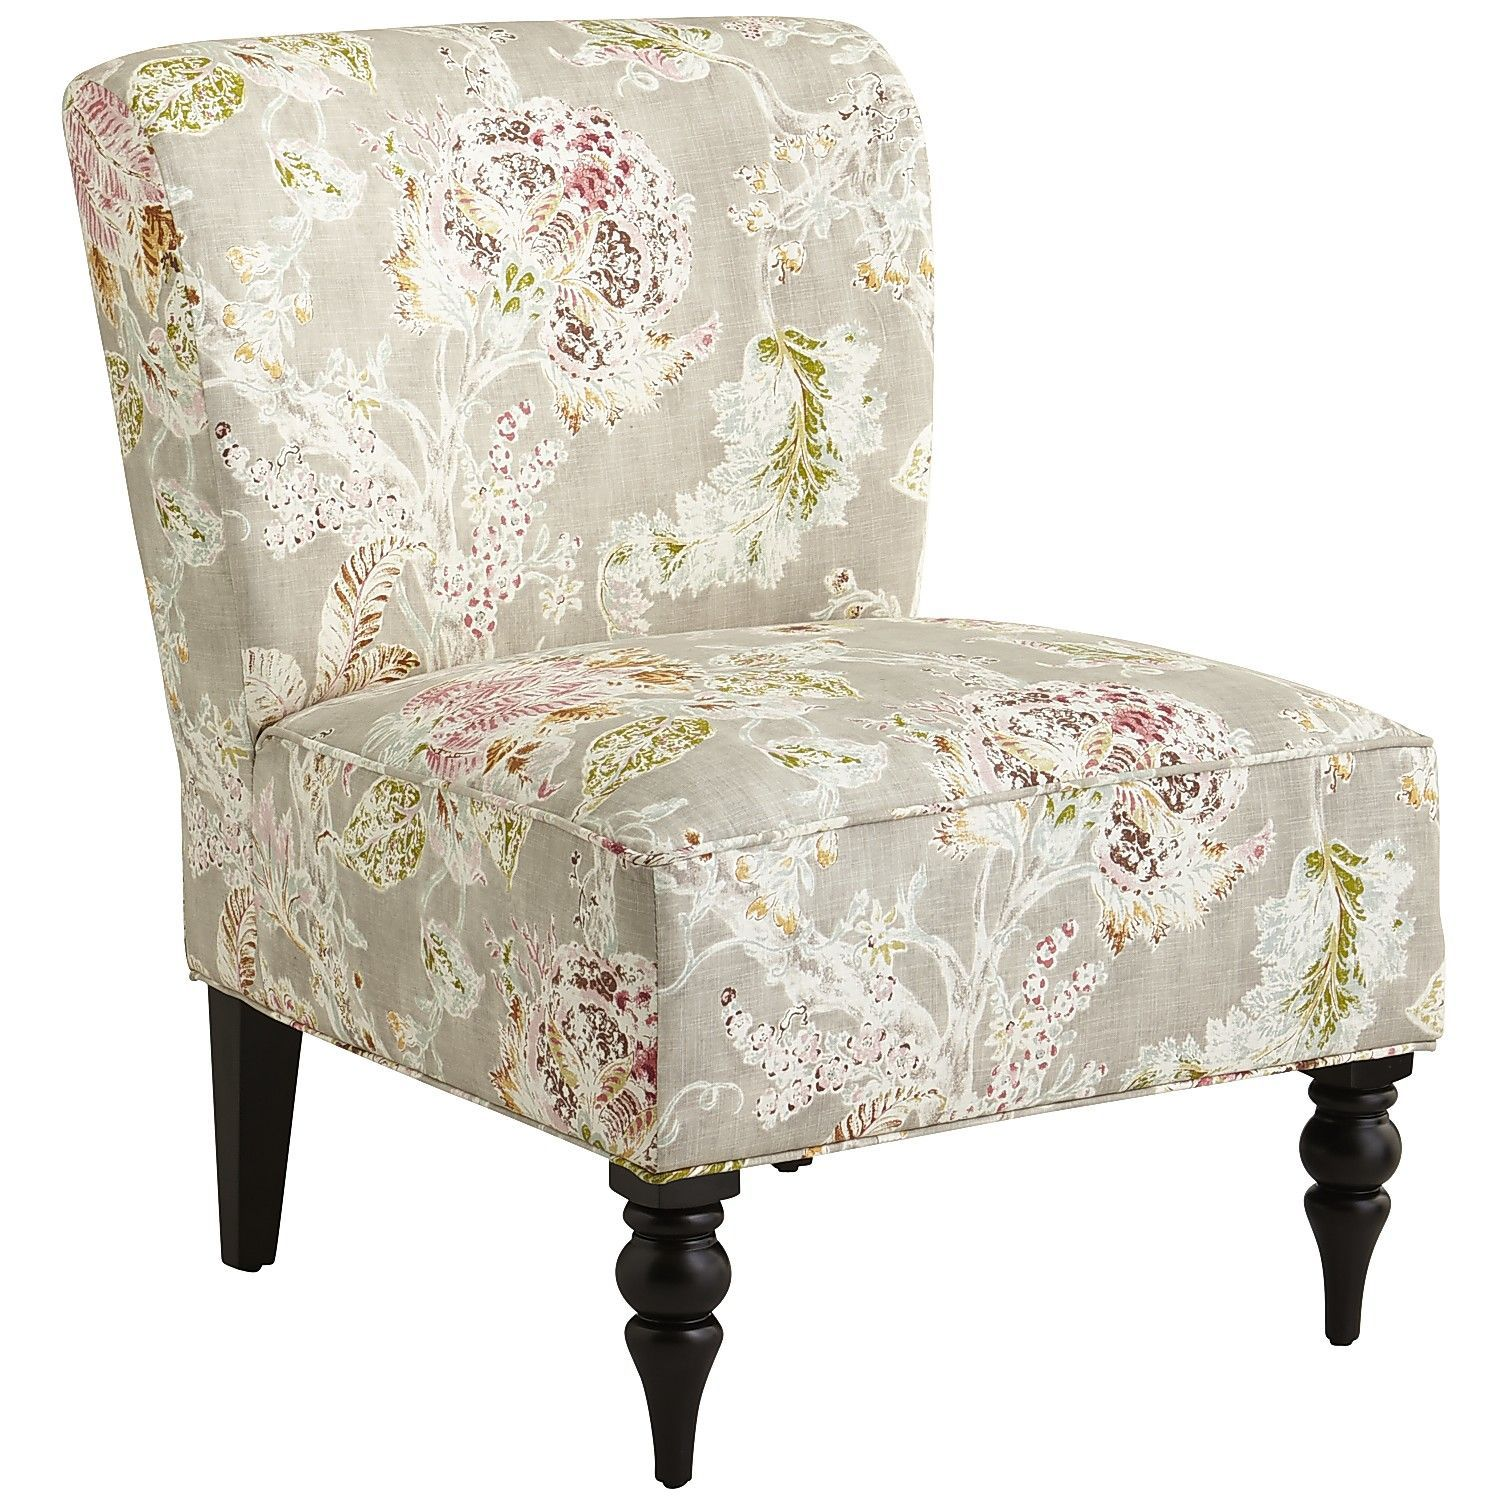 Pier One Living Room Living Room Addyson Chair Garden Dew Pier 1 Imports Bl Home